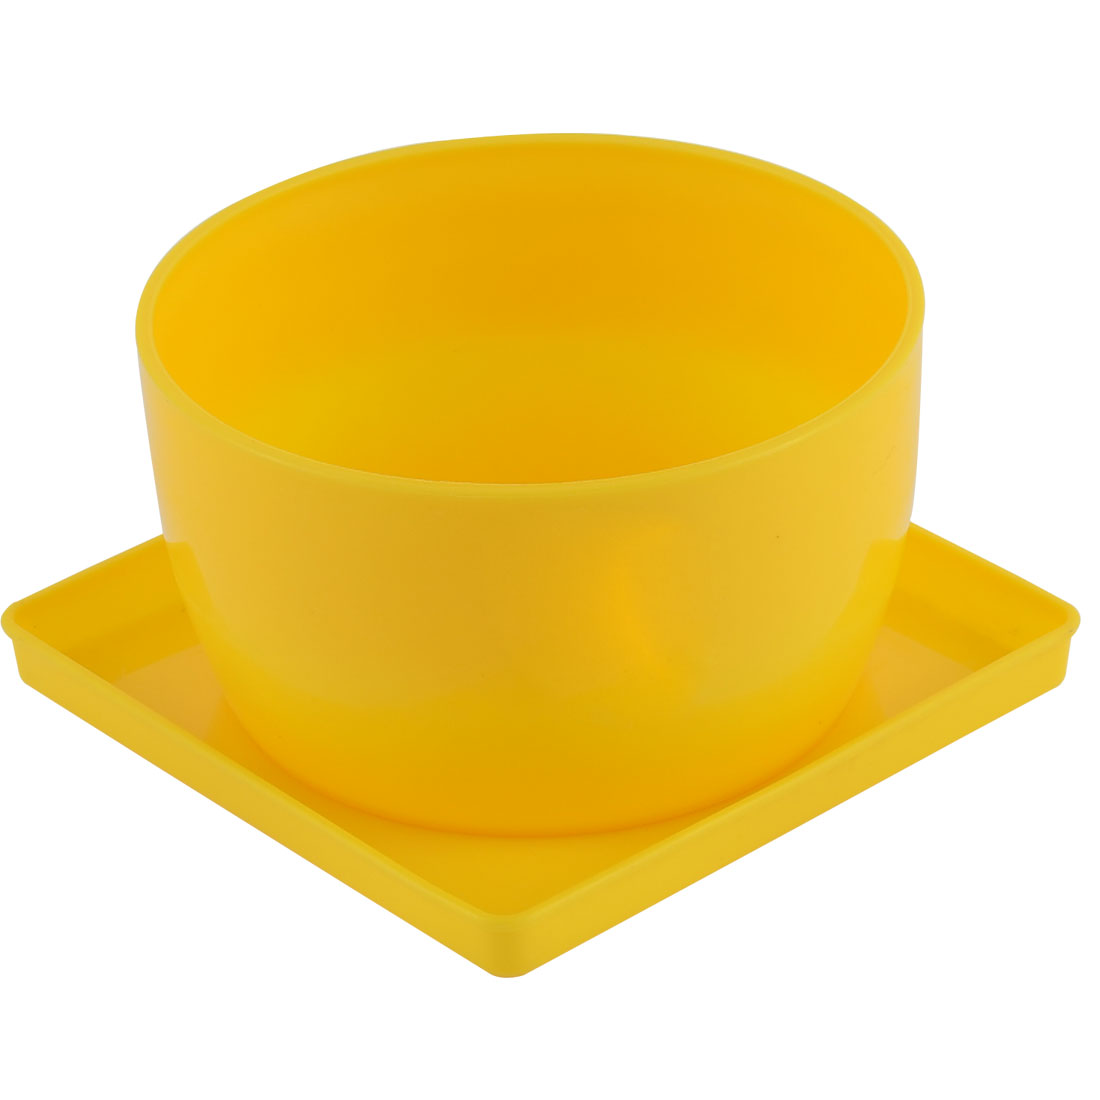 Home Patio Garden Plastic Bowl Shaped Cactus Aloe Plant Flower Pot Yellow w Tray